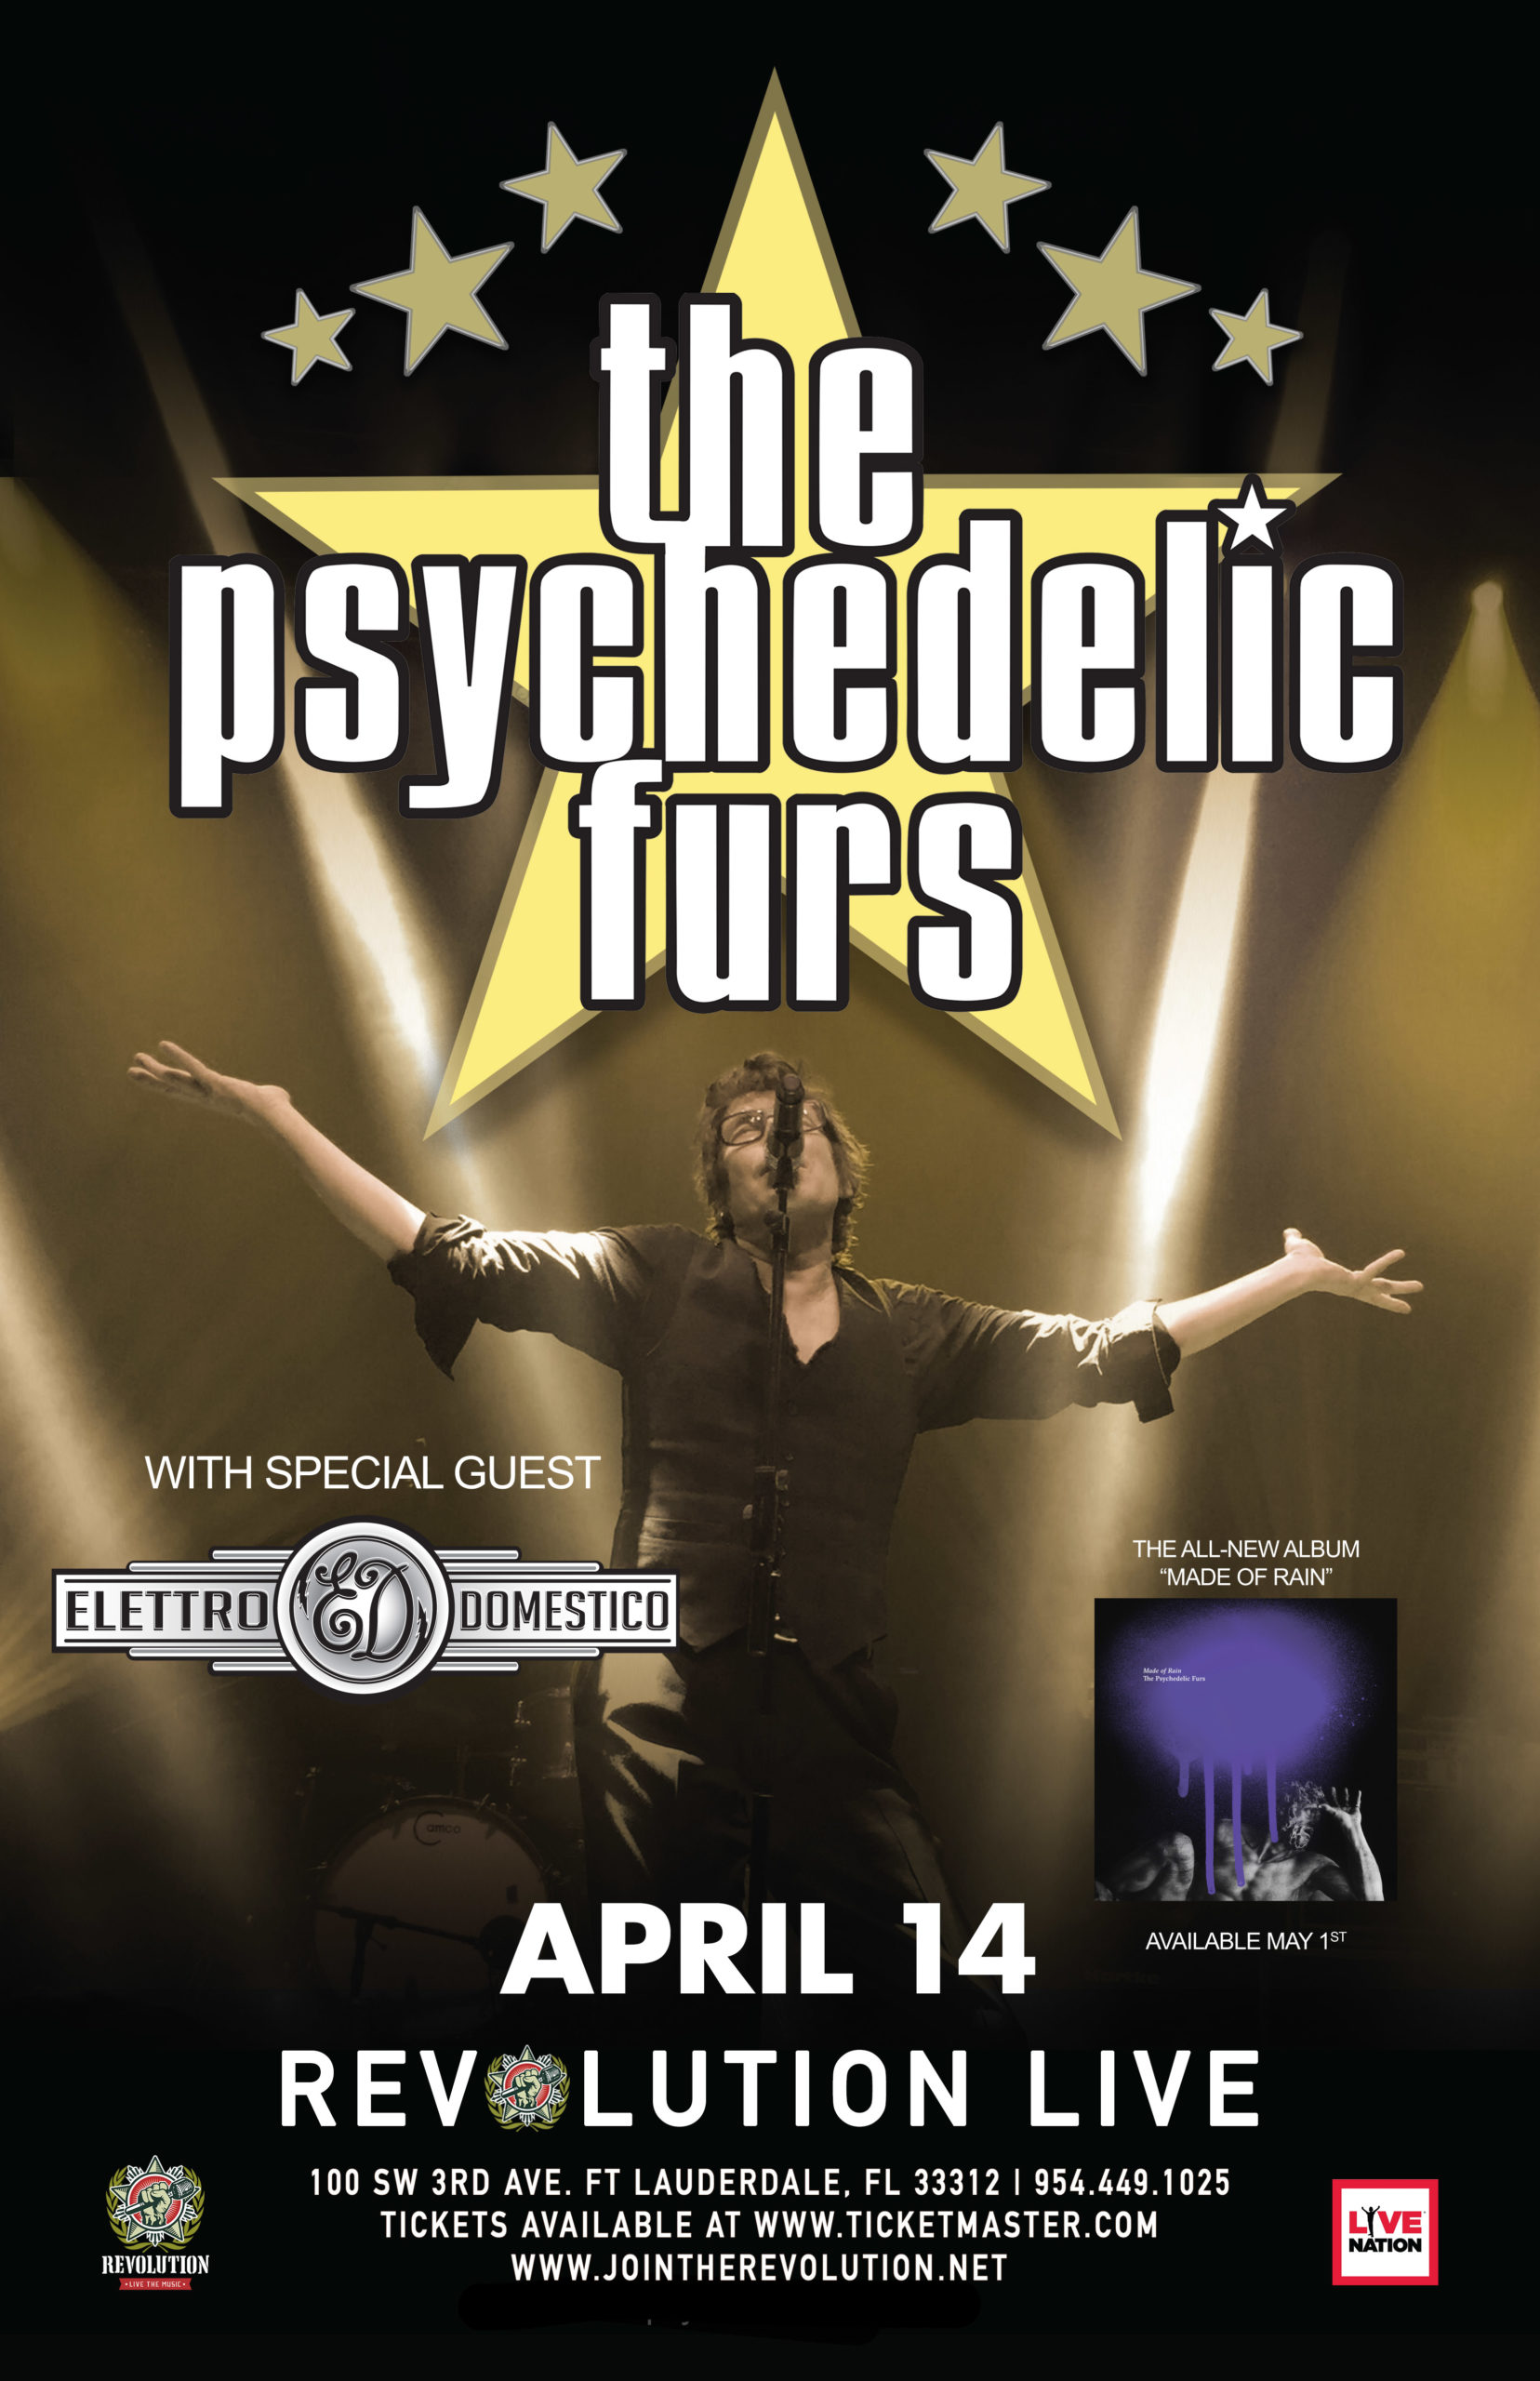 The Psychedelic Furs - CANCELLED